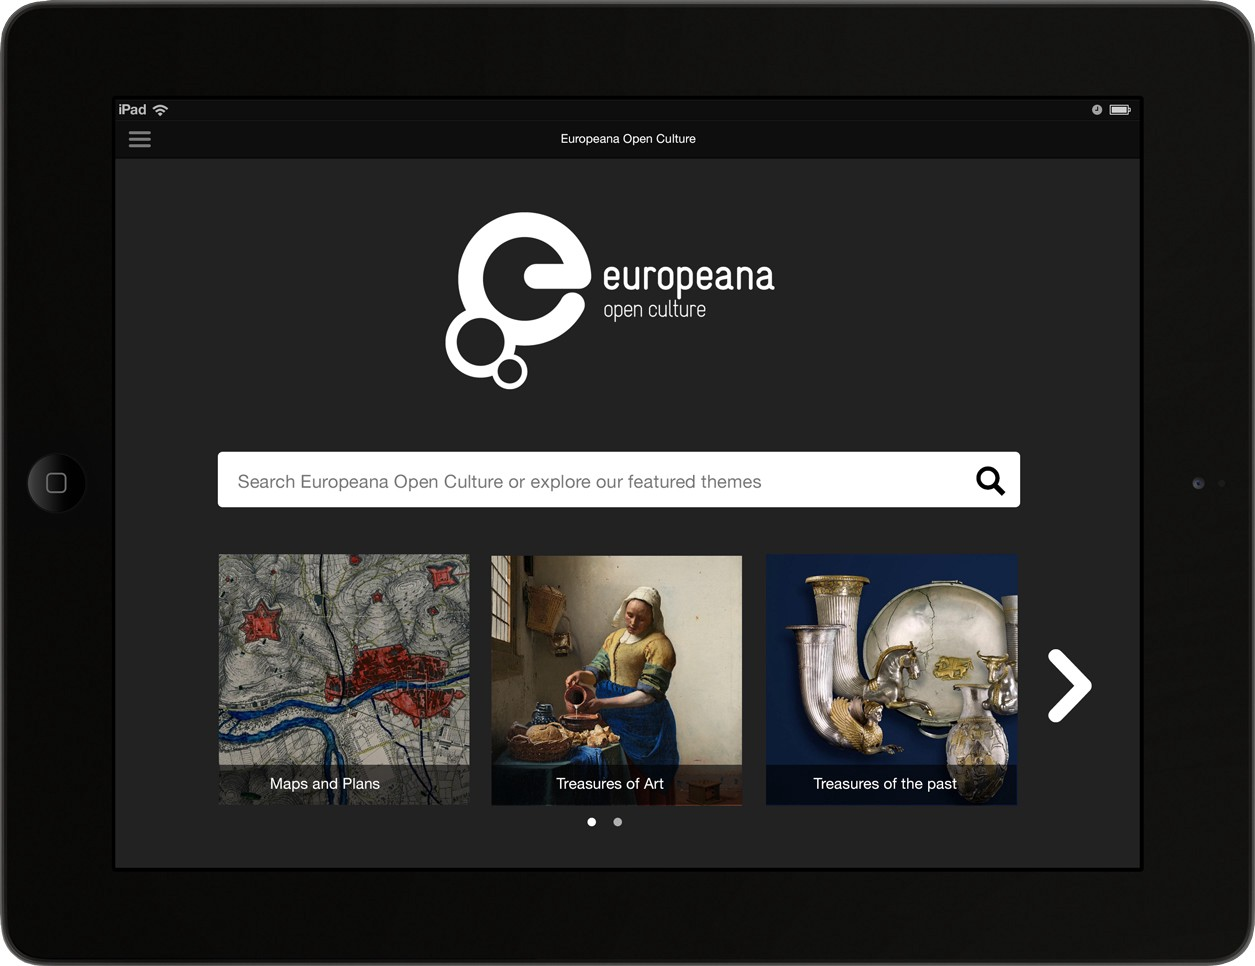 The landing page of the Europeana Open Culture app.